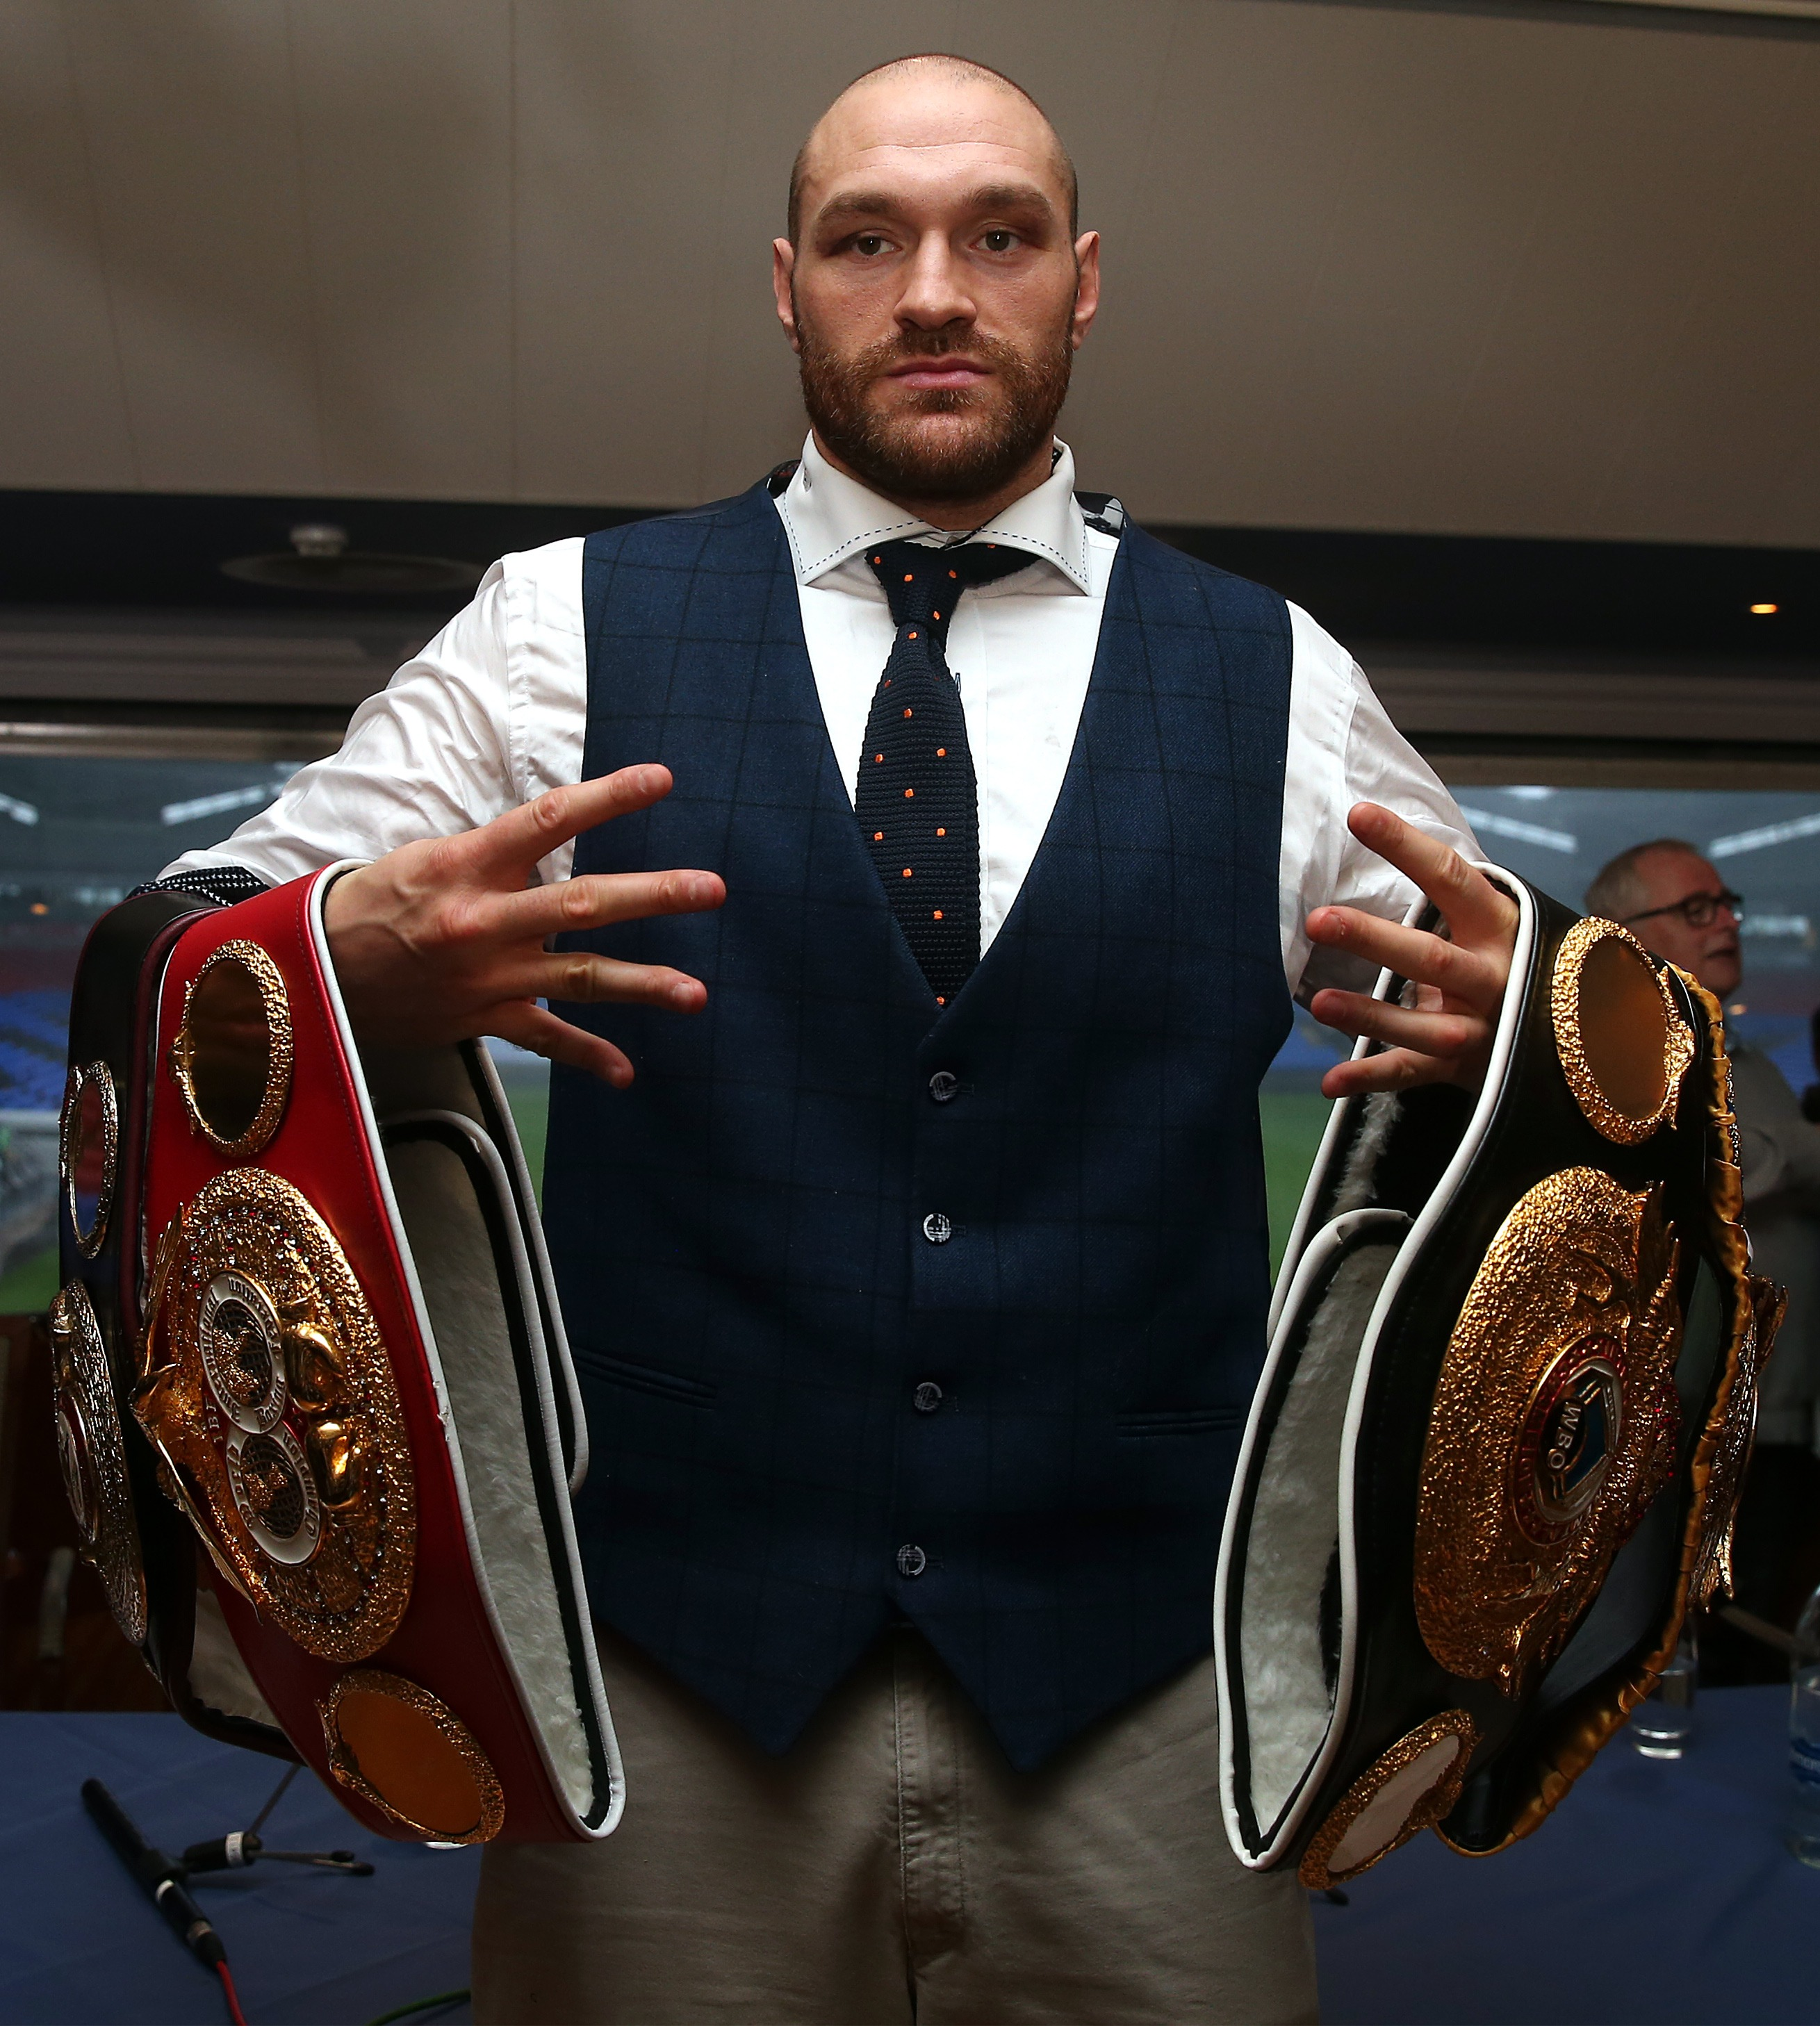 Tyson Fury Could Be Stripped Of His Belts After Testing Positive For Cocaine GettyImages 499274246